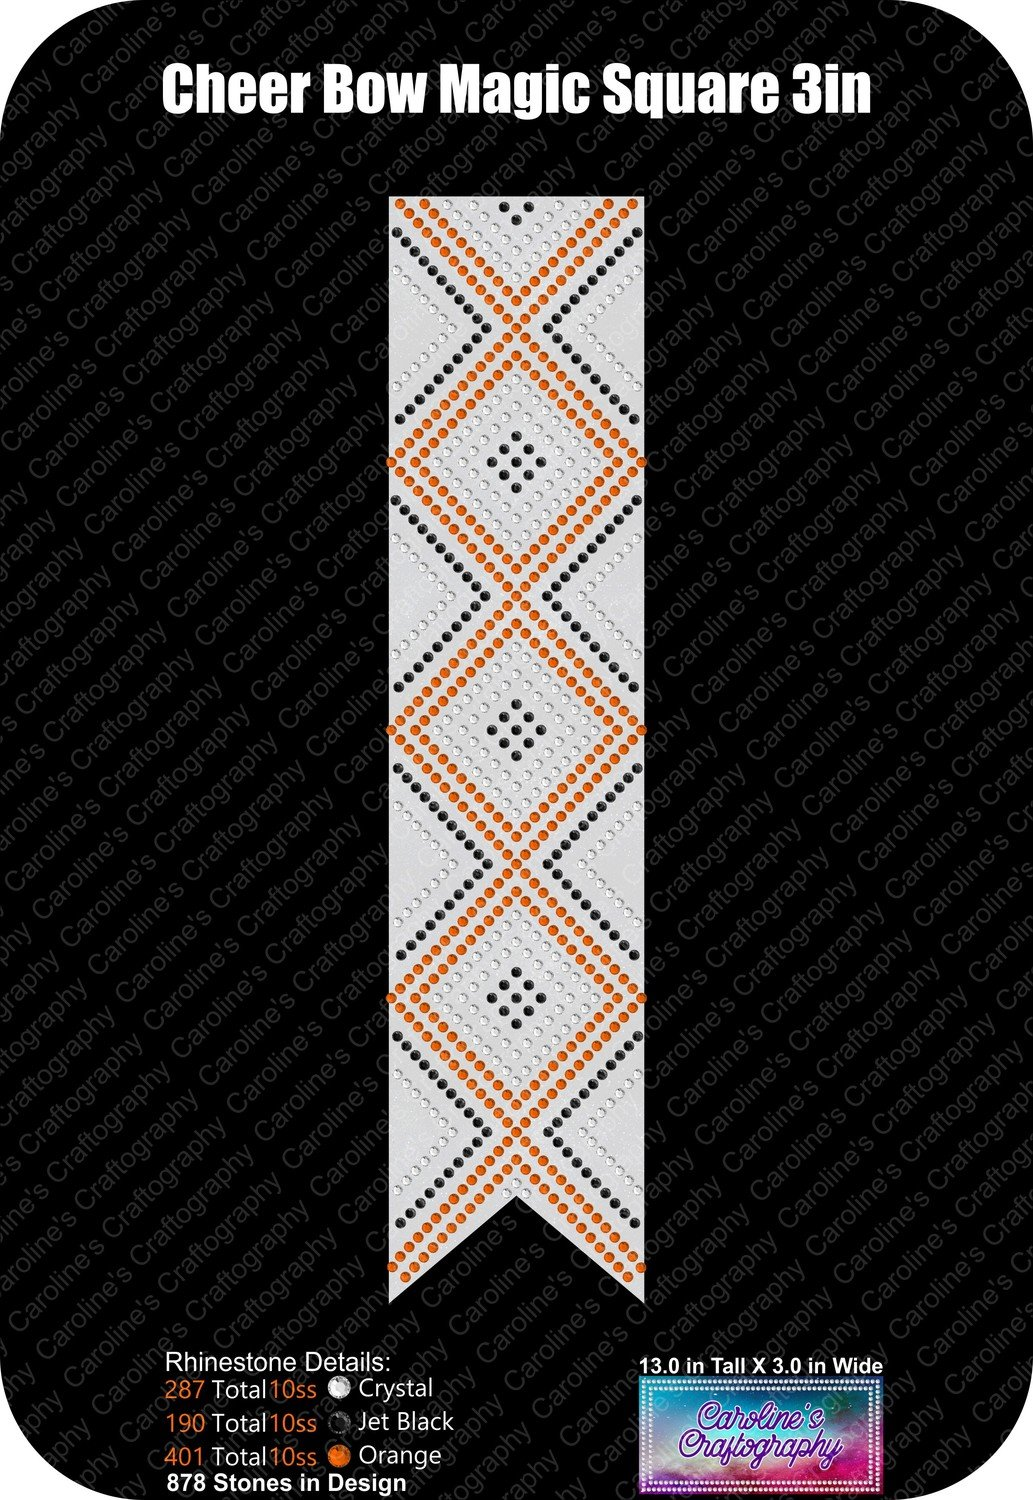 Cheer Bow Magic Square Stone 3in